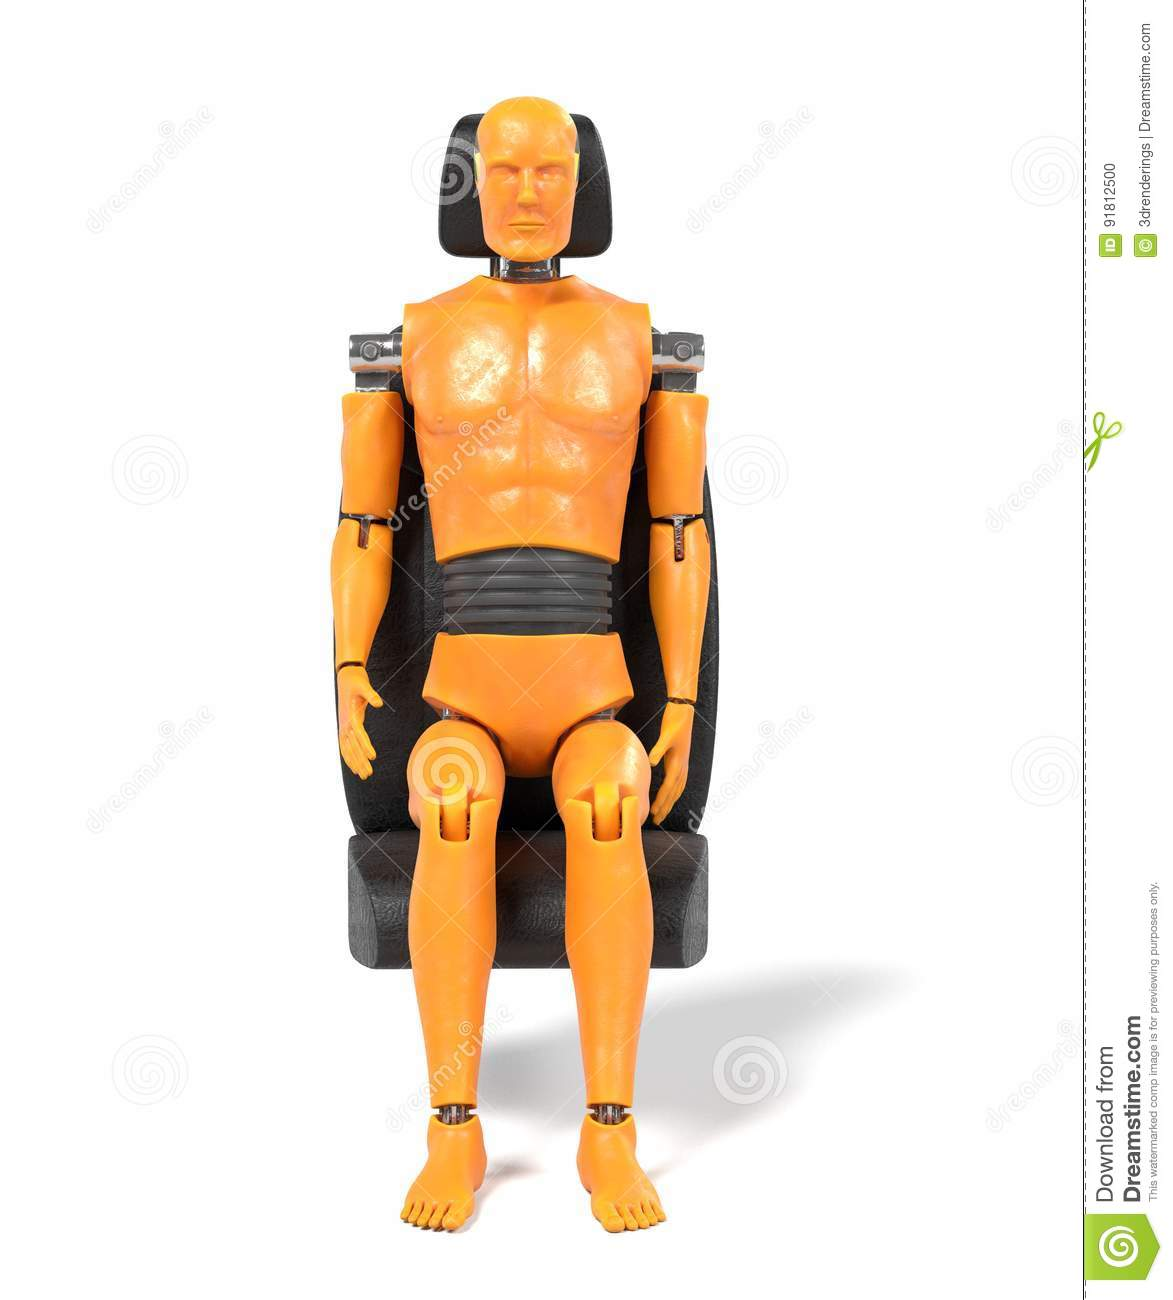 49c8f7985377 Crash test dummy stock illustration. Illustration of mannequin ...